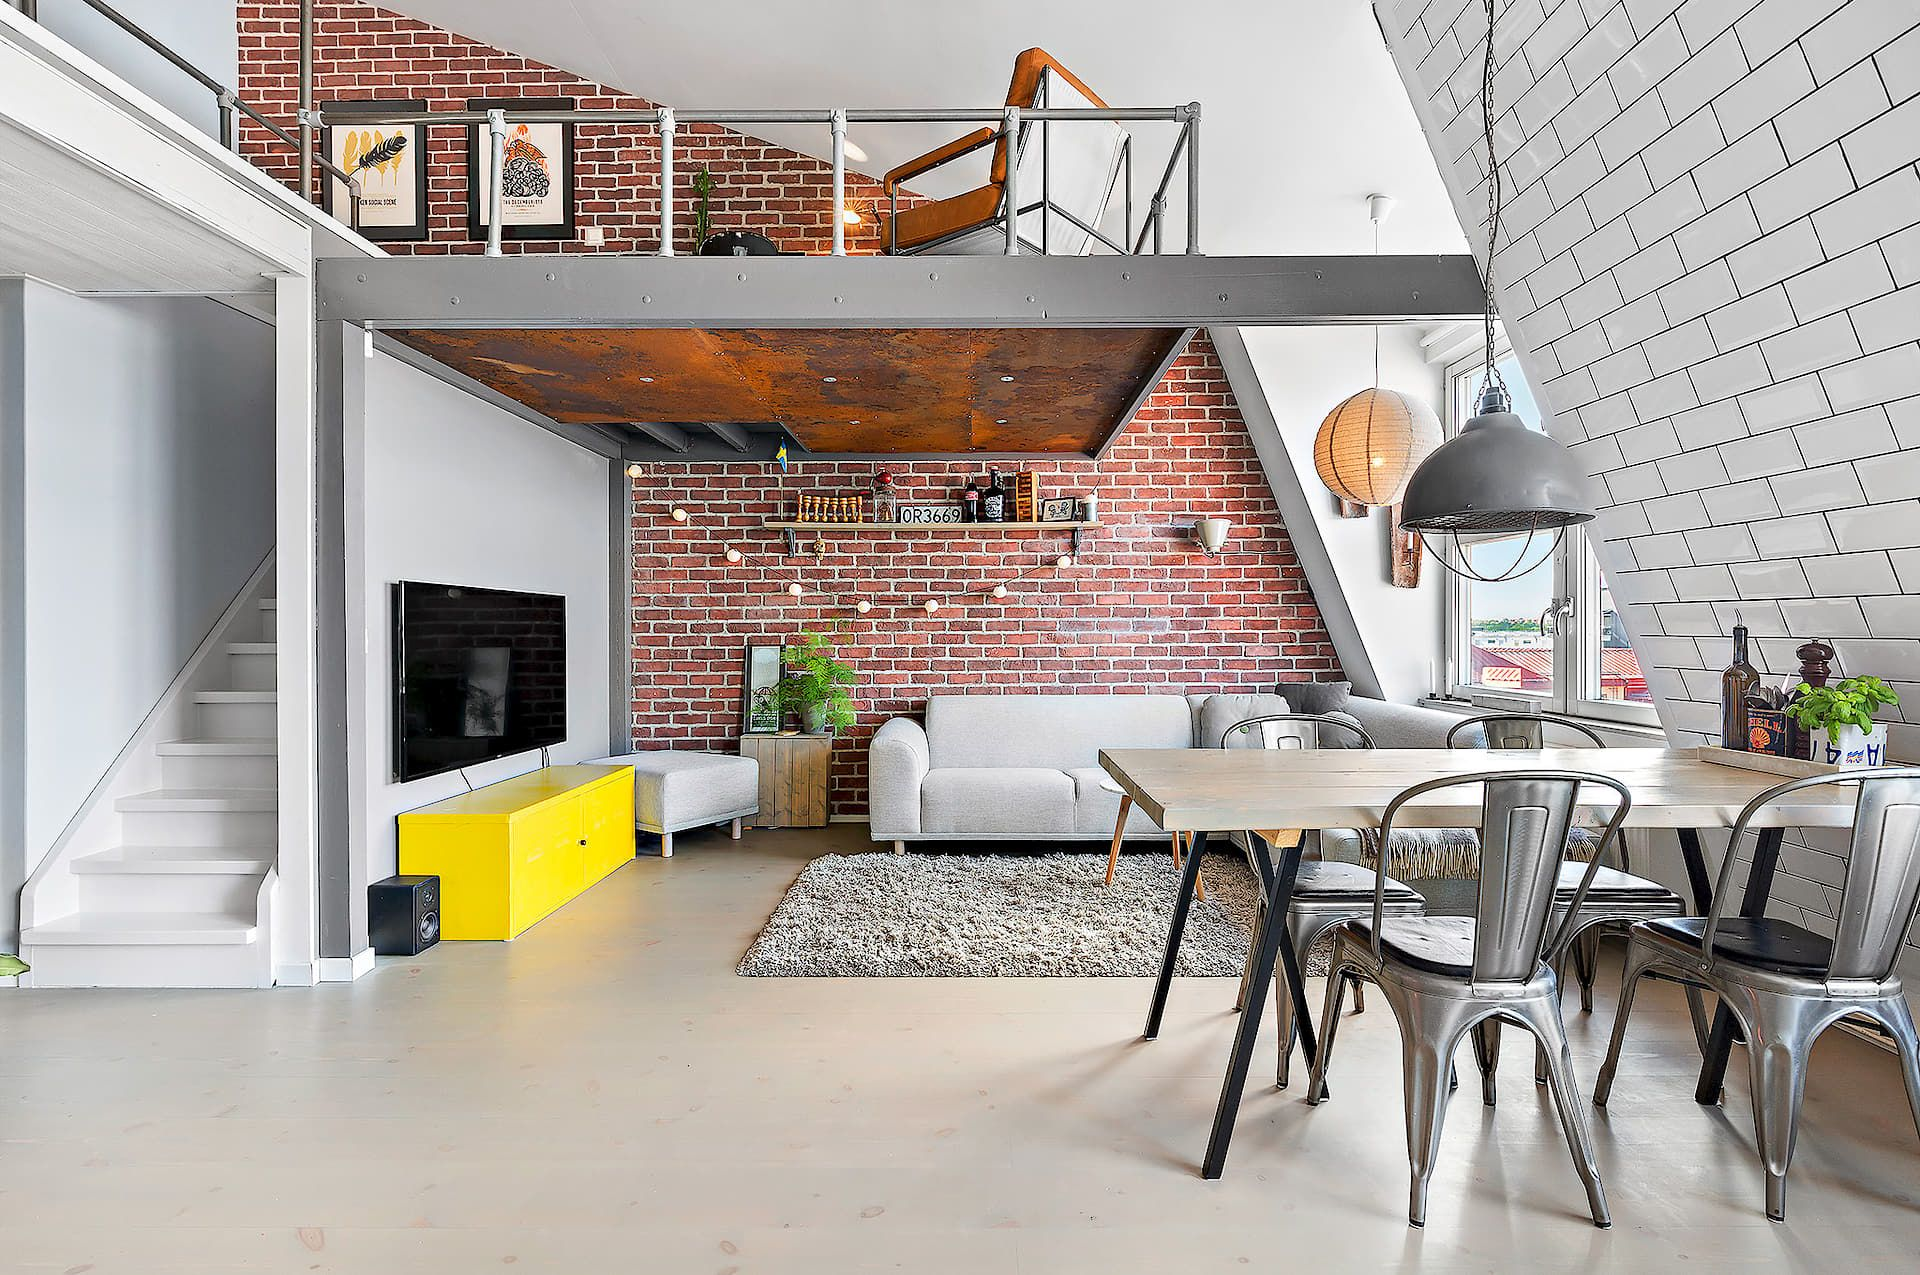 Mezzanine | Déco maison | Pinterest | Mezzanine, Lofts and Small spaces